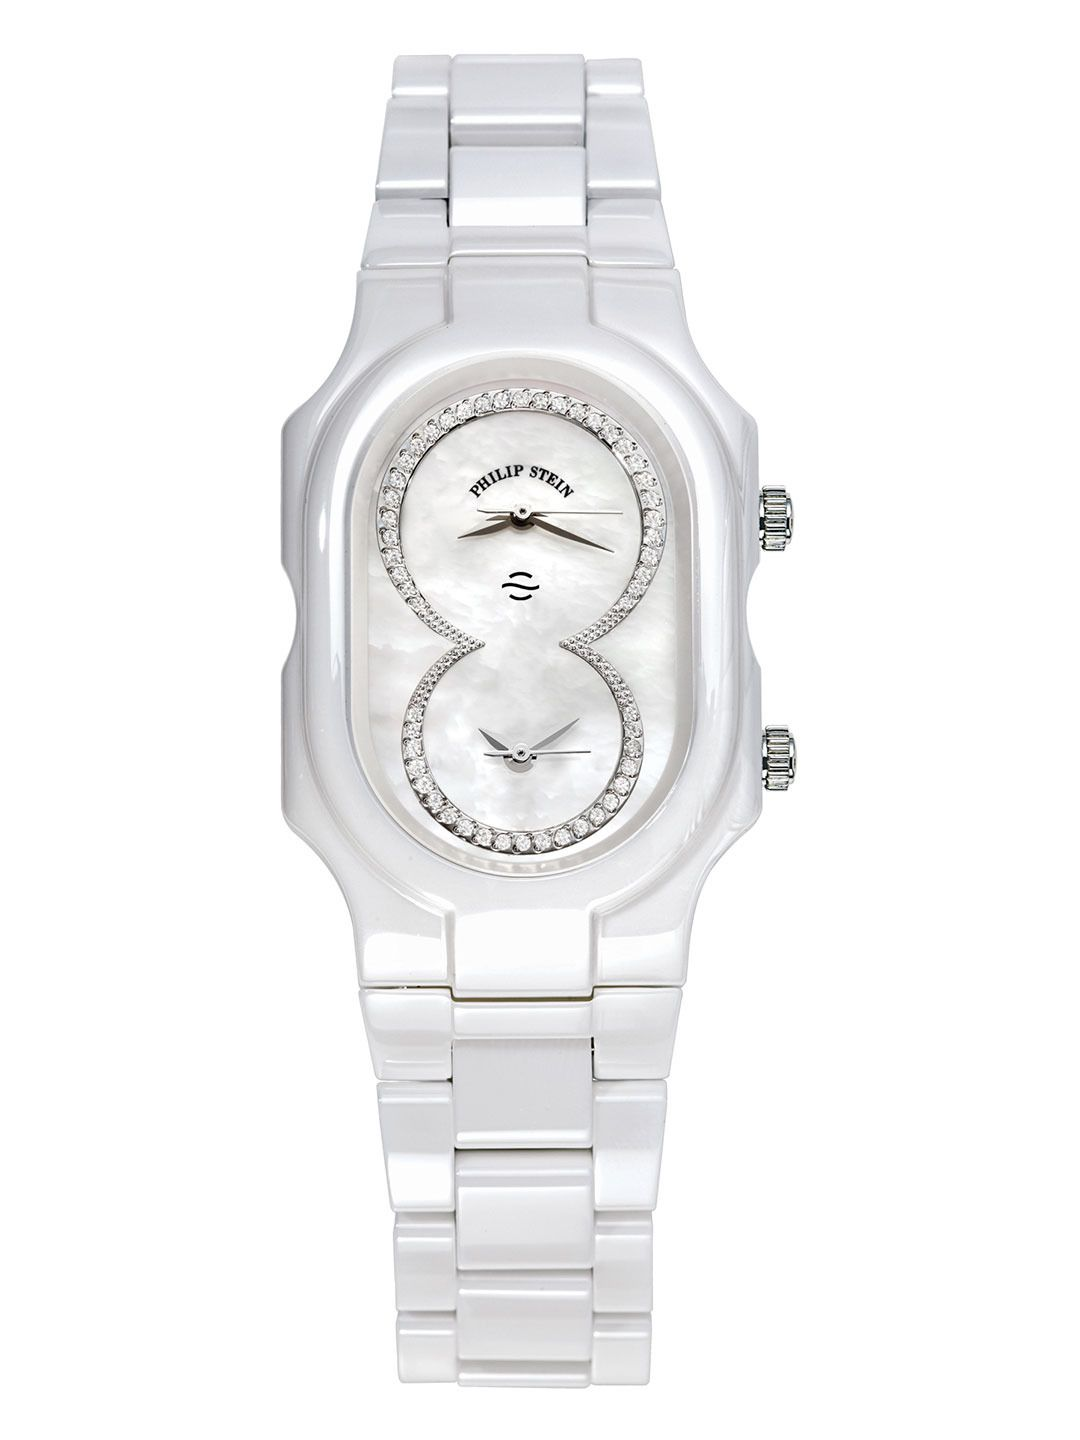 Women's White Ceramic, Diamond, & Mother Of Pearl Watch by Philip Stein at Gilt